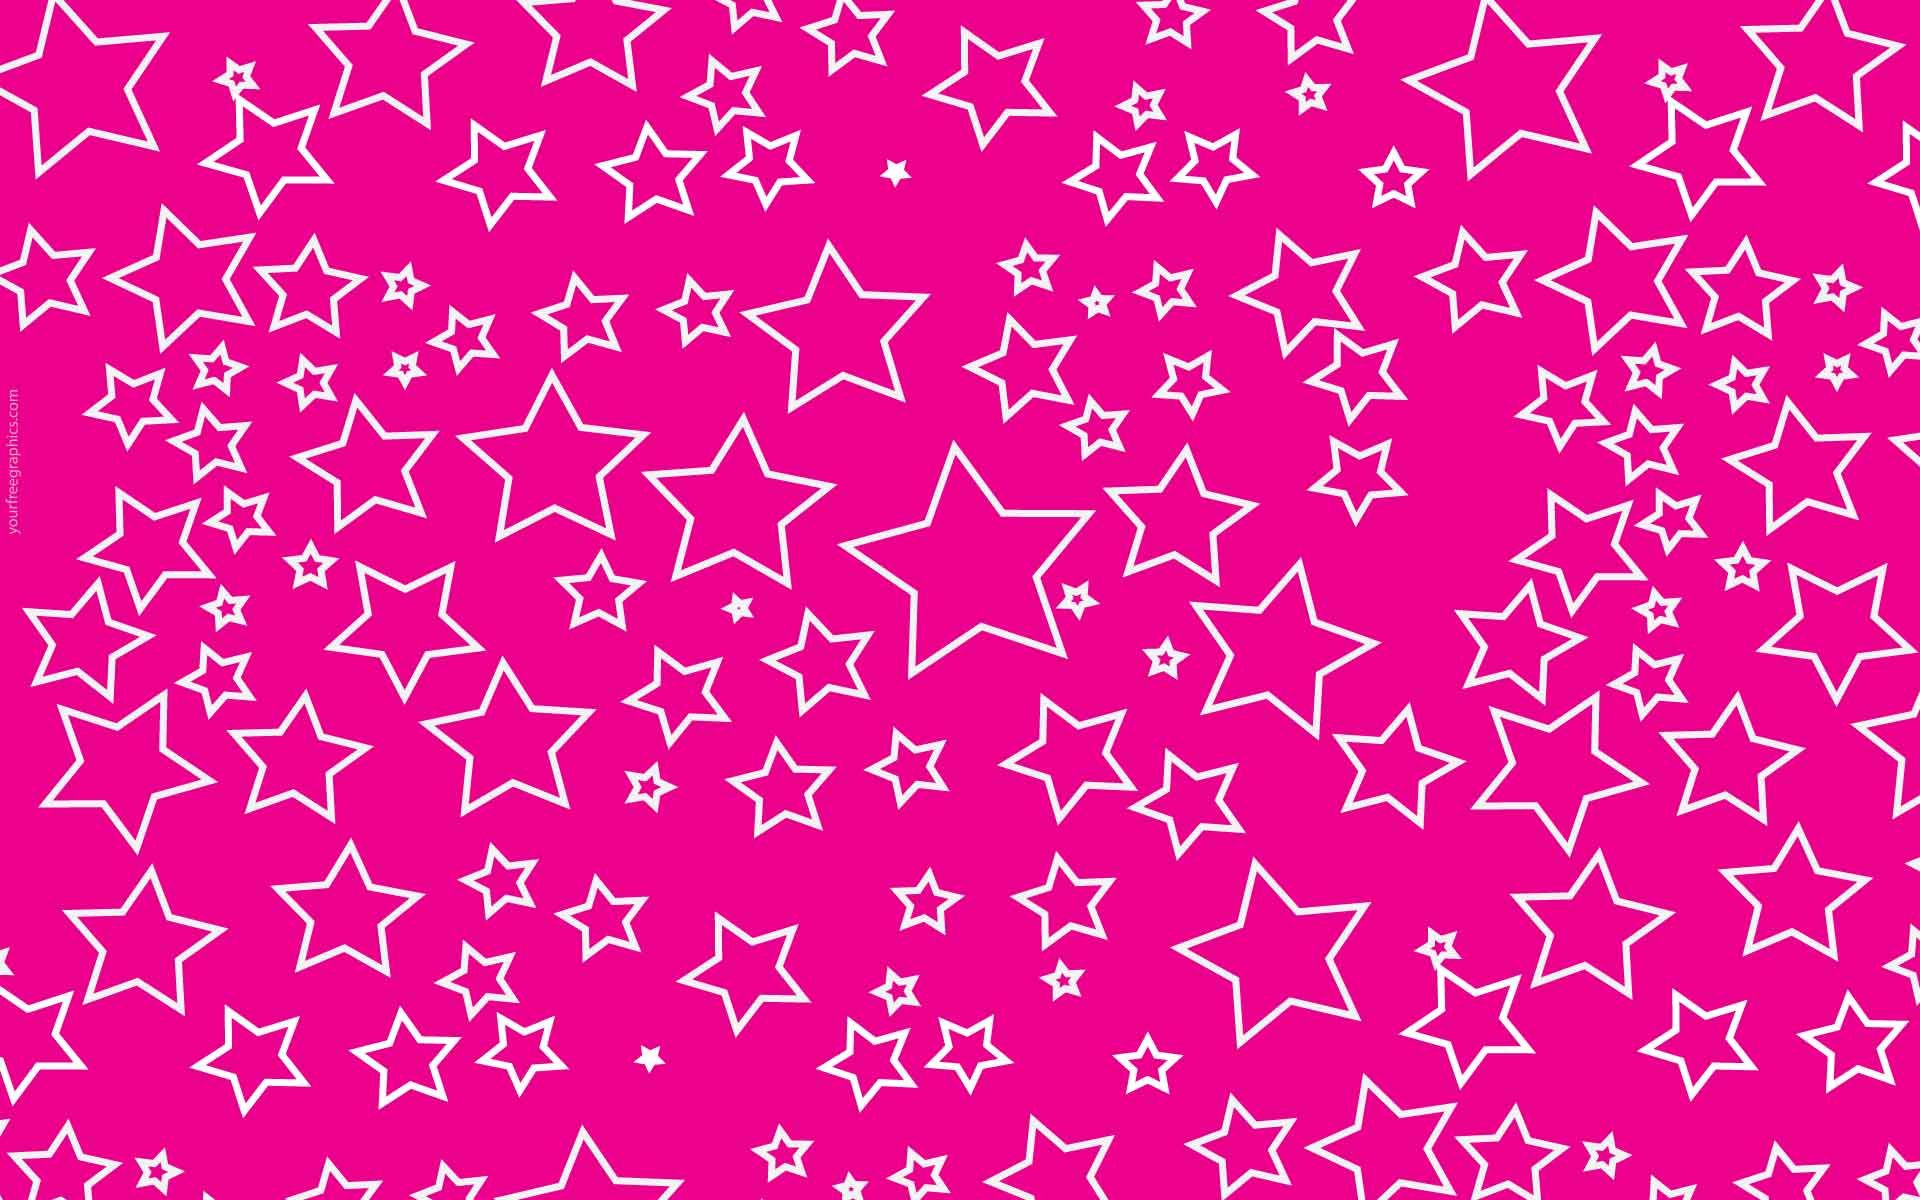 Pink With White Stars Hd Pink Wallpapers Pink Wallpaper Iphone Wallpaper Girly